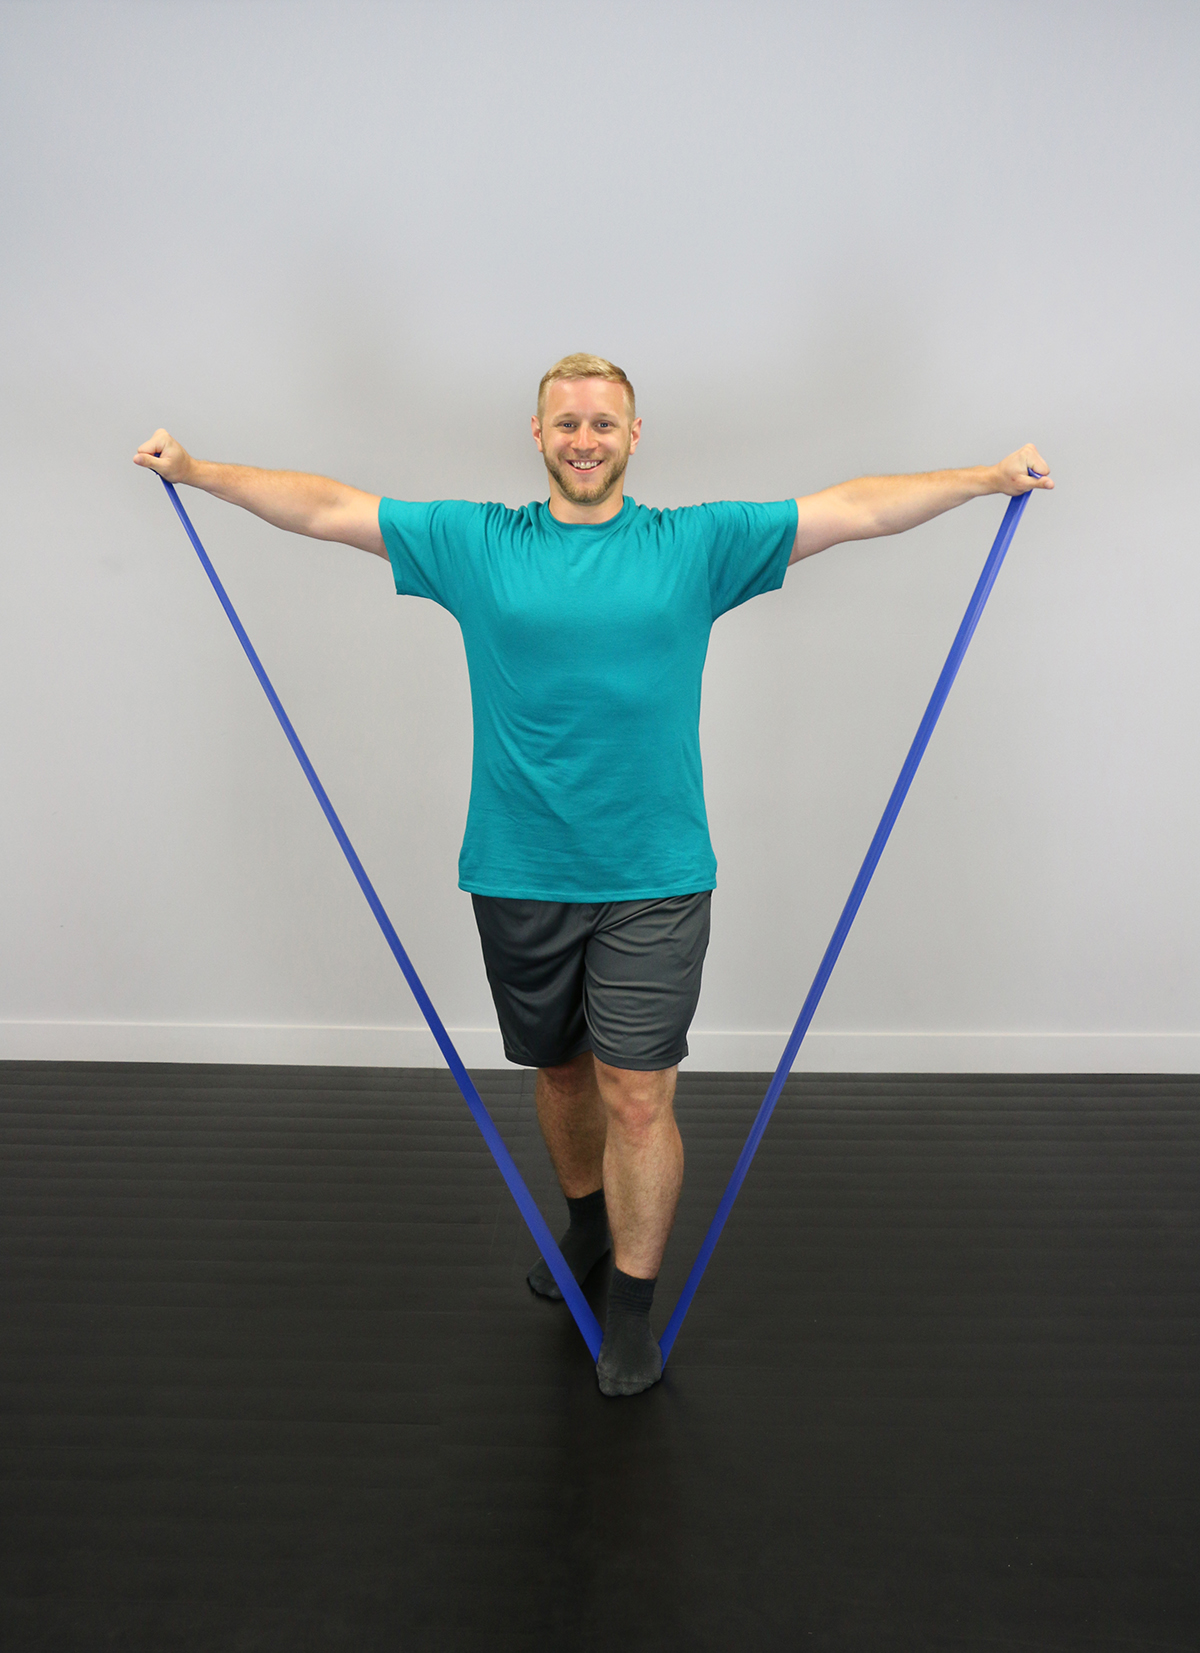 10 Resistance Band Exercises To Do Anywhere